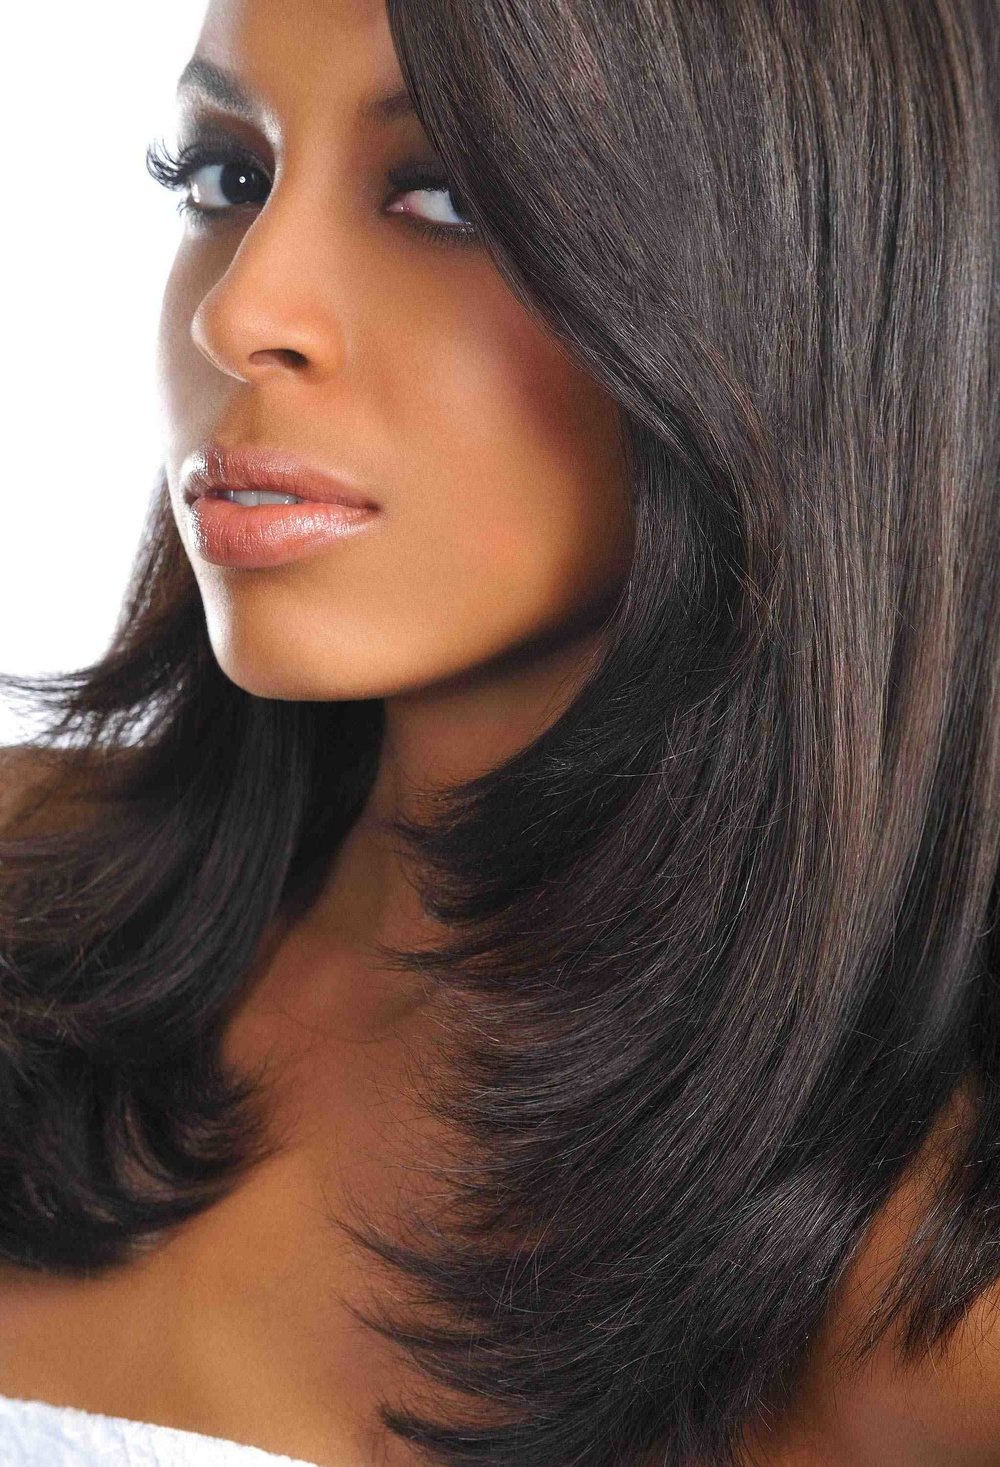 The healthiest hair extensions. - If you're looking for hair extensions or replacement to enhance length and/or fullness we offer a variety of unique options to choose from.Nina Ross Hair & Skin Therapy has FUSIONS | MICROLINKS | TAPE-INS | BRAIDLESS SEWINS which are the healthiest ways to look fab while nurturing your natural hair at the same time.Not sure which is right for you? Our skilled hair care professionals are happy to consult with you regarding your needs and come up with a plan.Are Healthy Hair Extensions the answer for you? Click here to learn more.